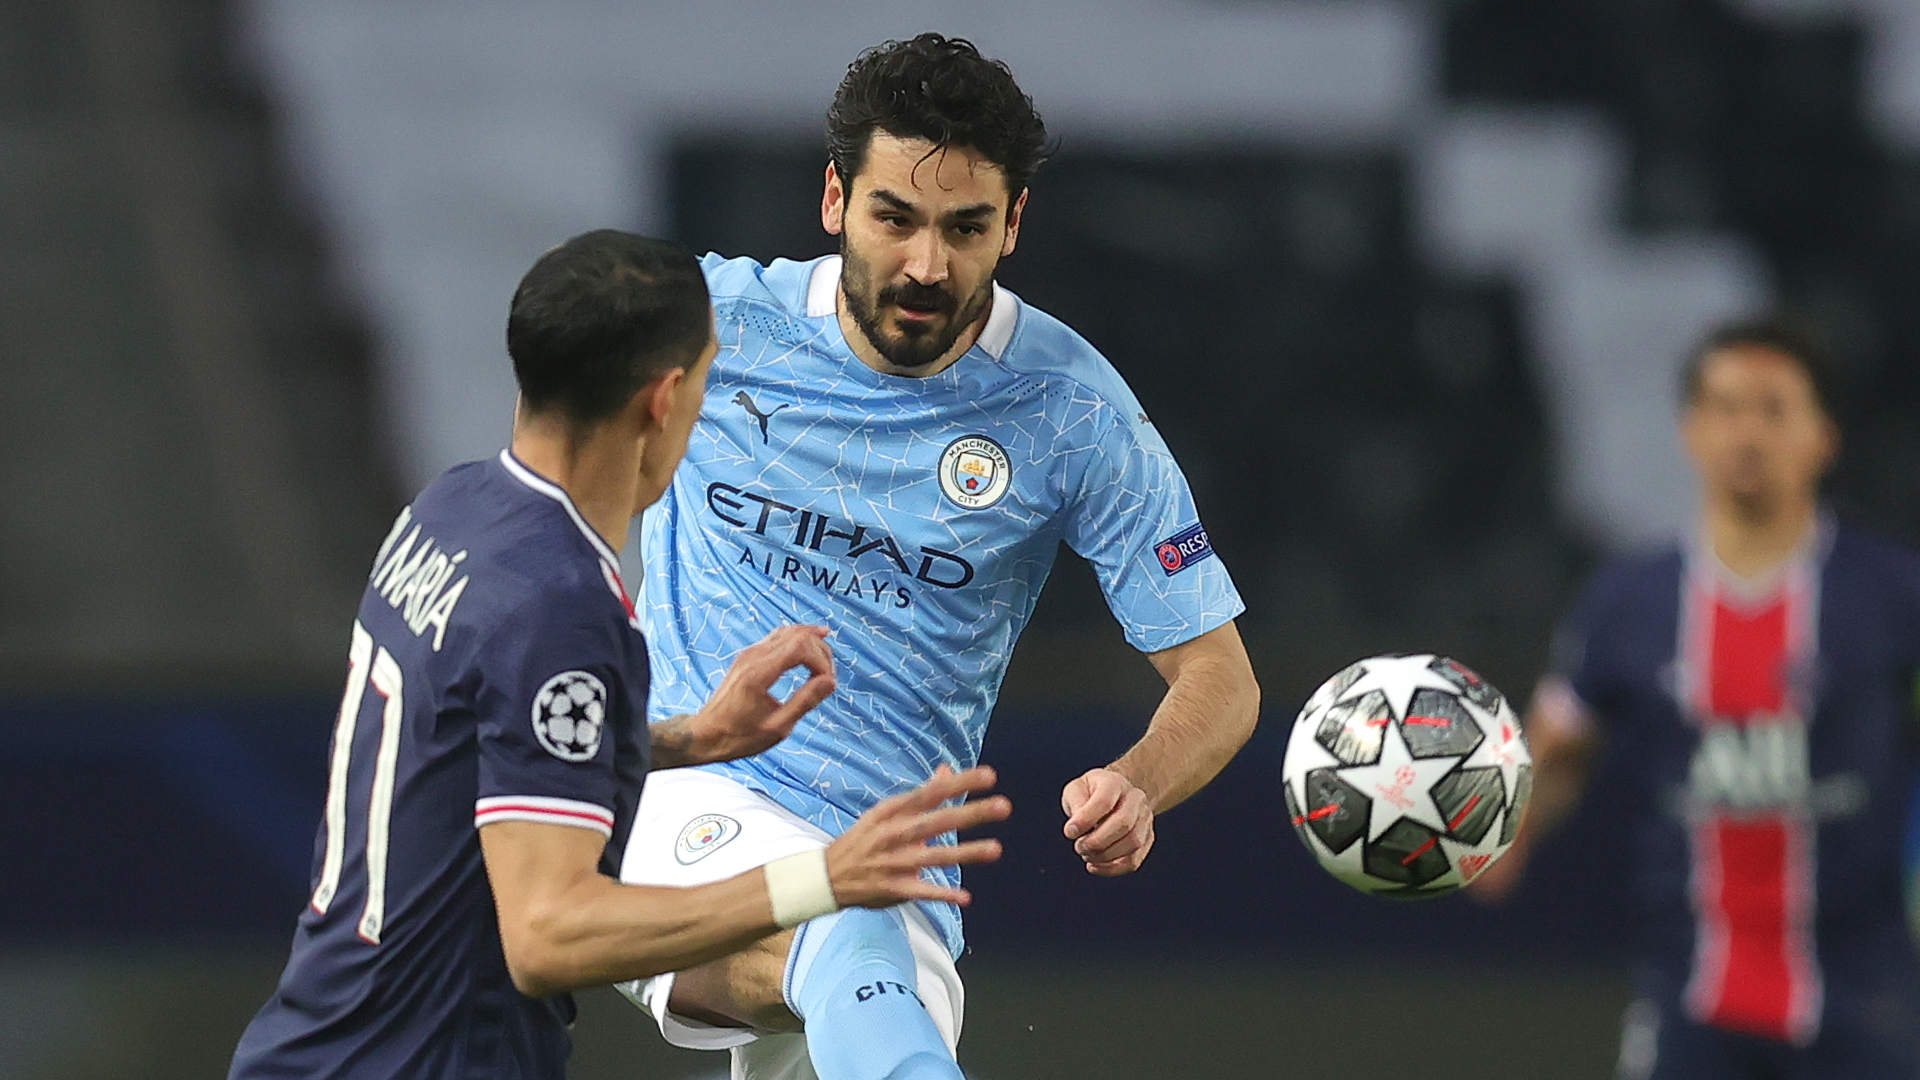 How to watch PSG vs Manchester City in the 2021-22 Champions League from India?